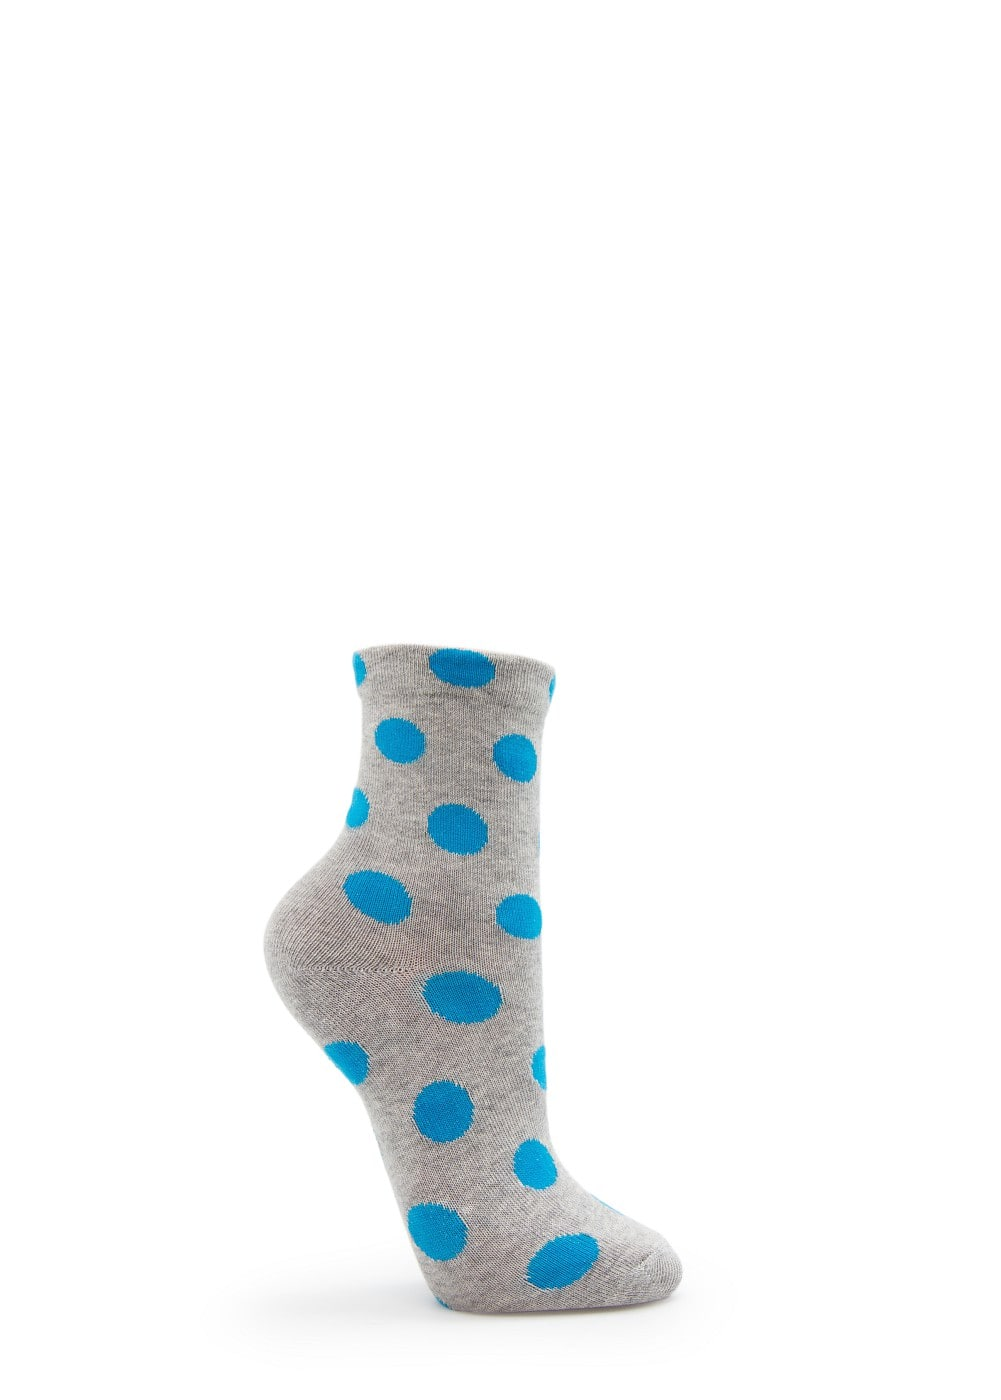 Polka-dot socks